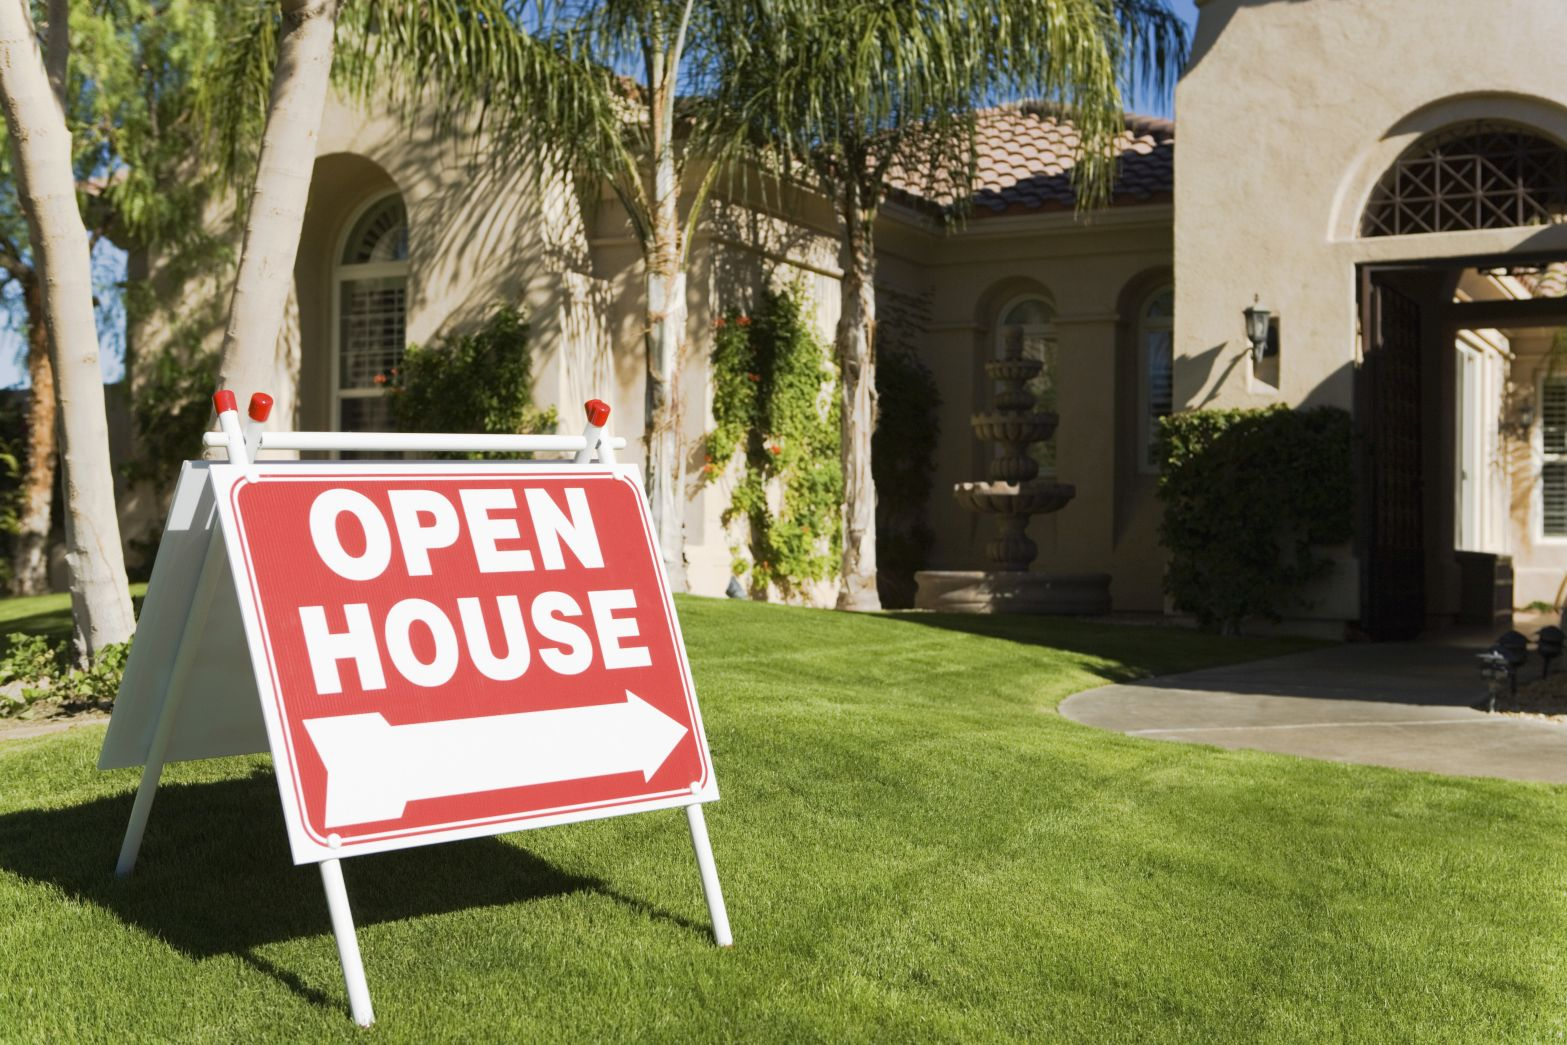 Open house sign on front lawn outside of house